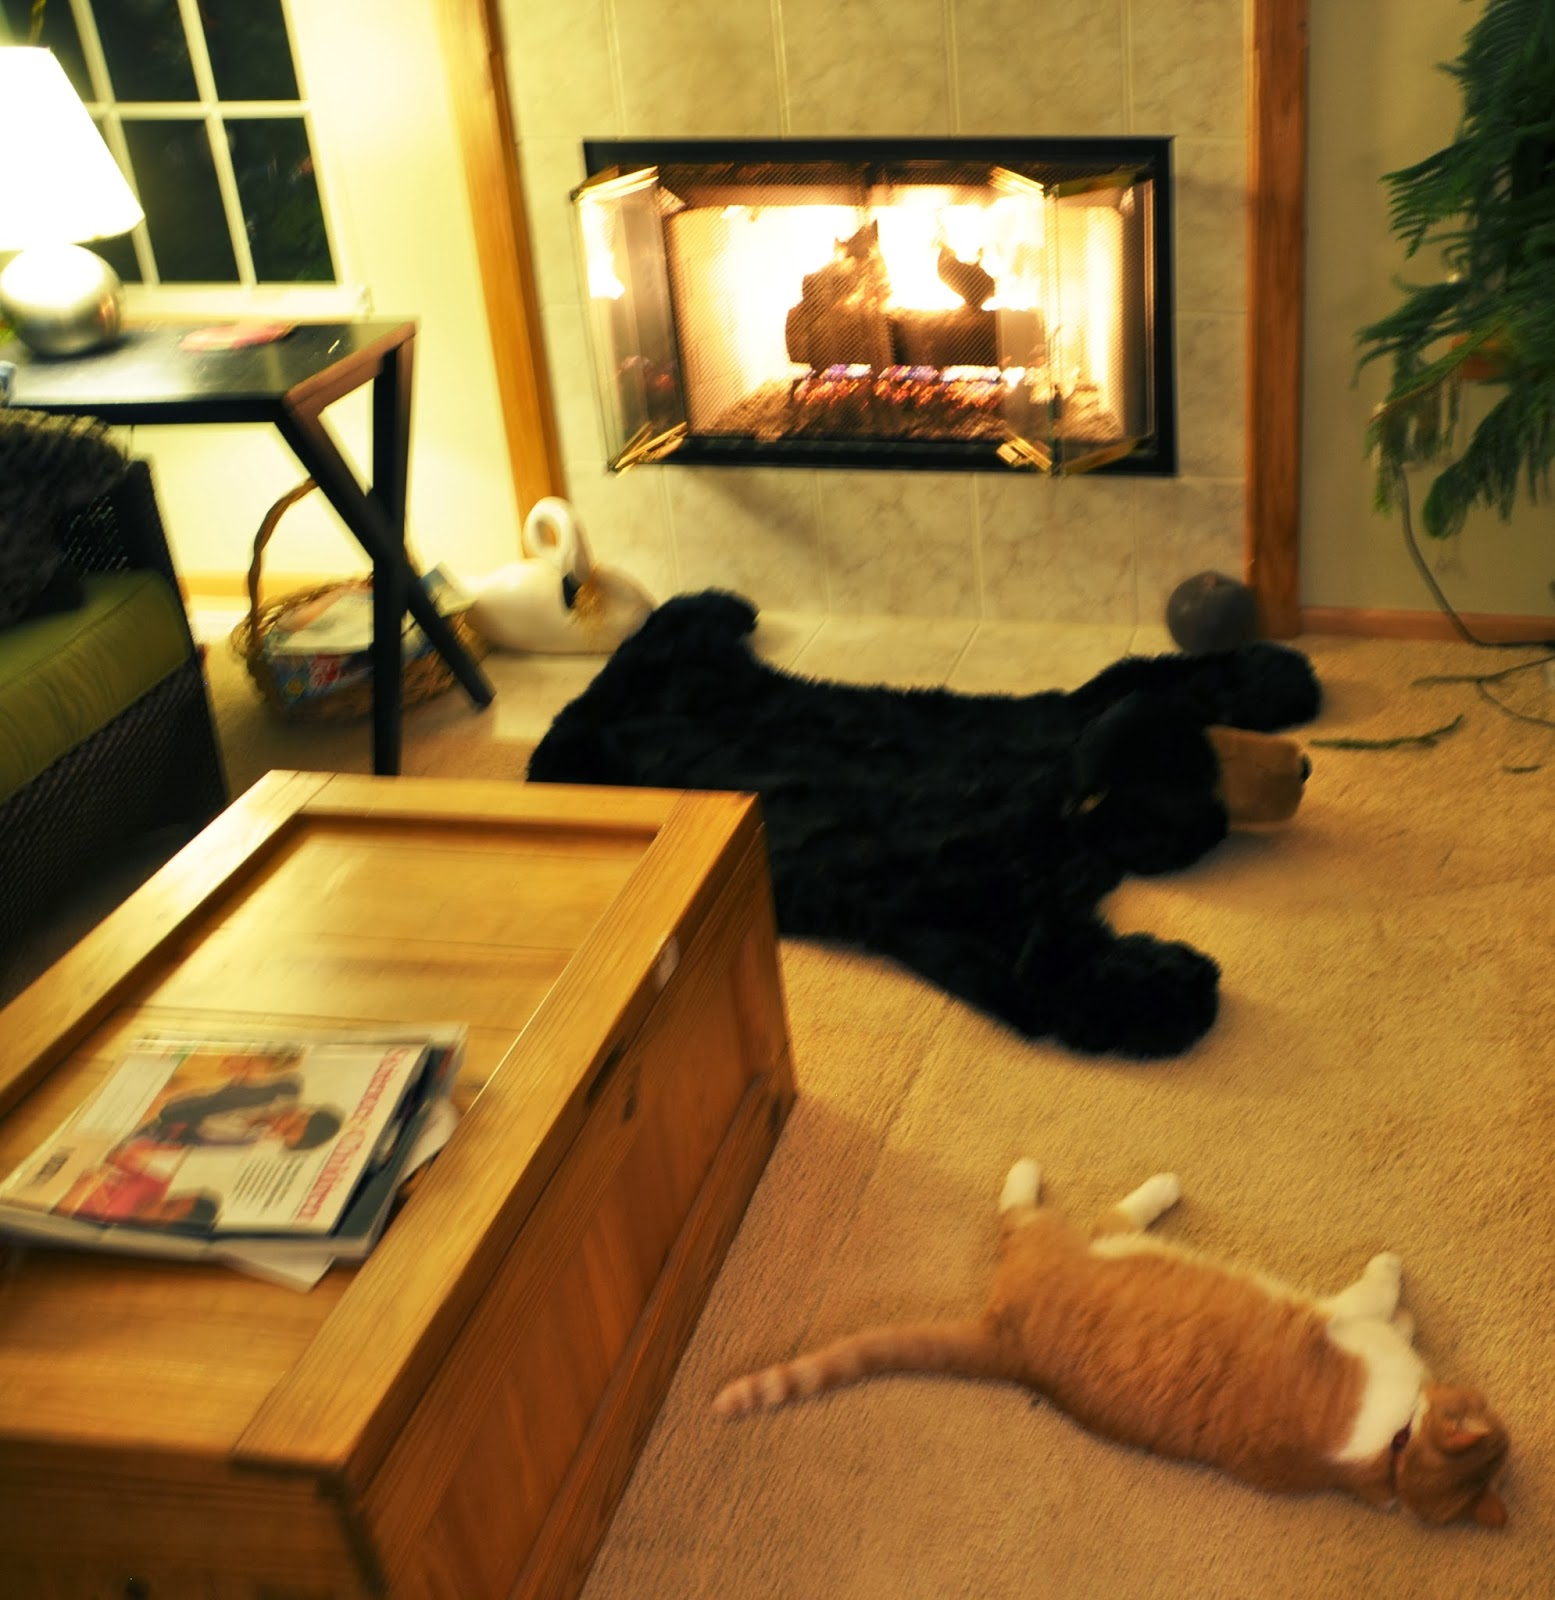 Sad News…Sparky, The Camp Cat Has Died